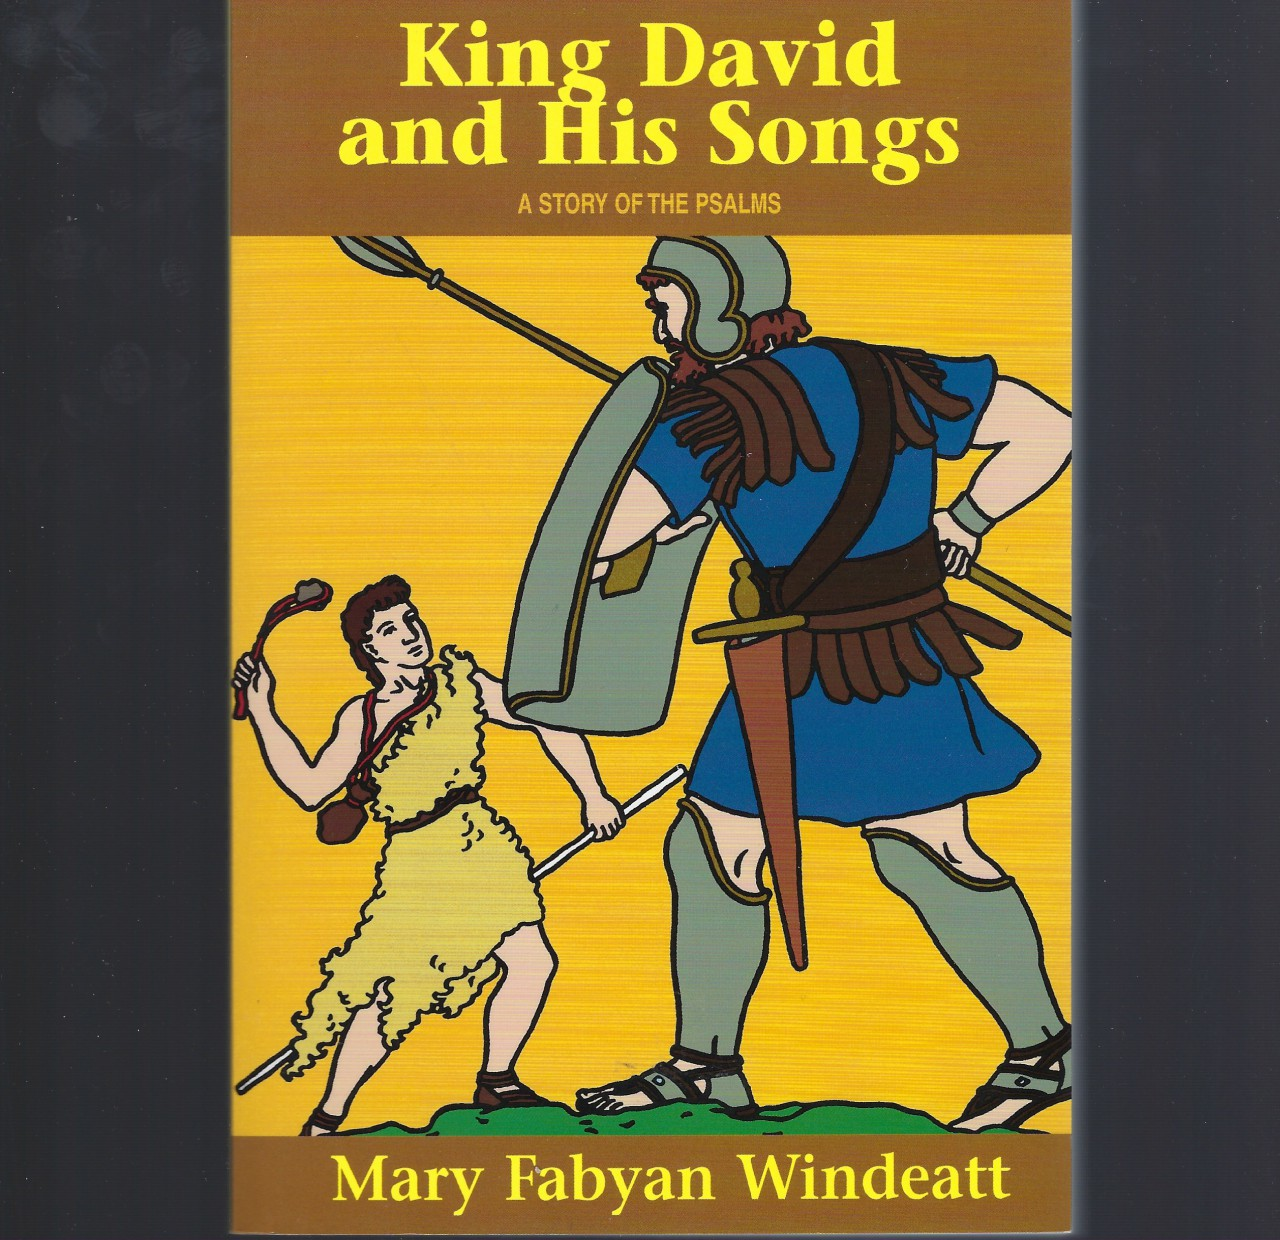 King David and His Songs A Story of the Psalms, Mary Fabyan Windeatt